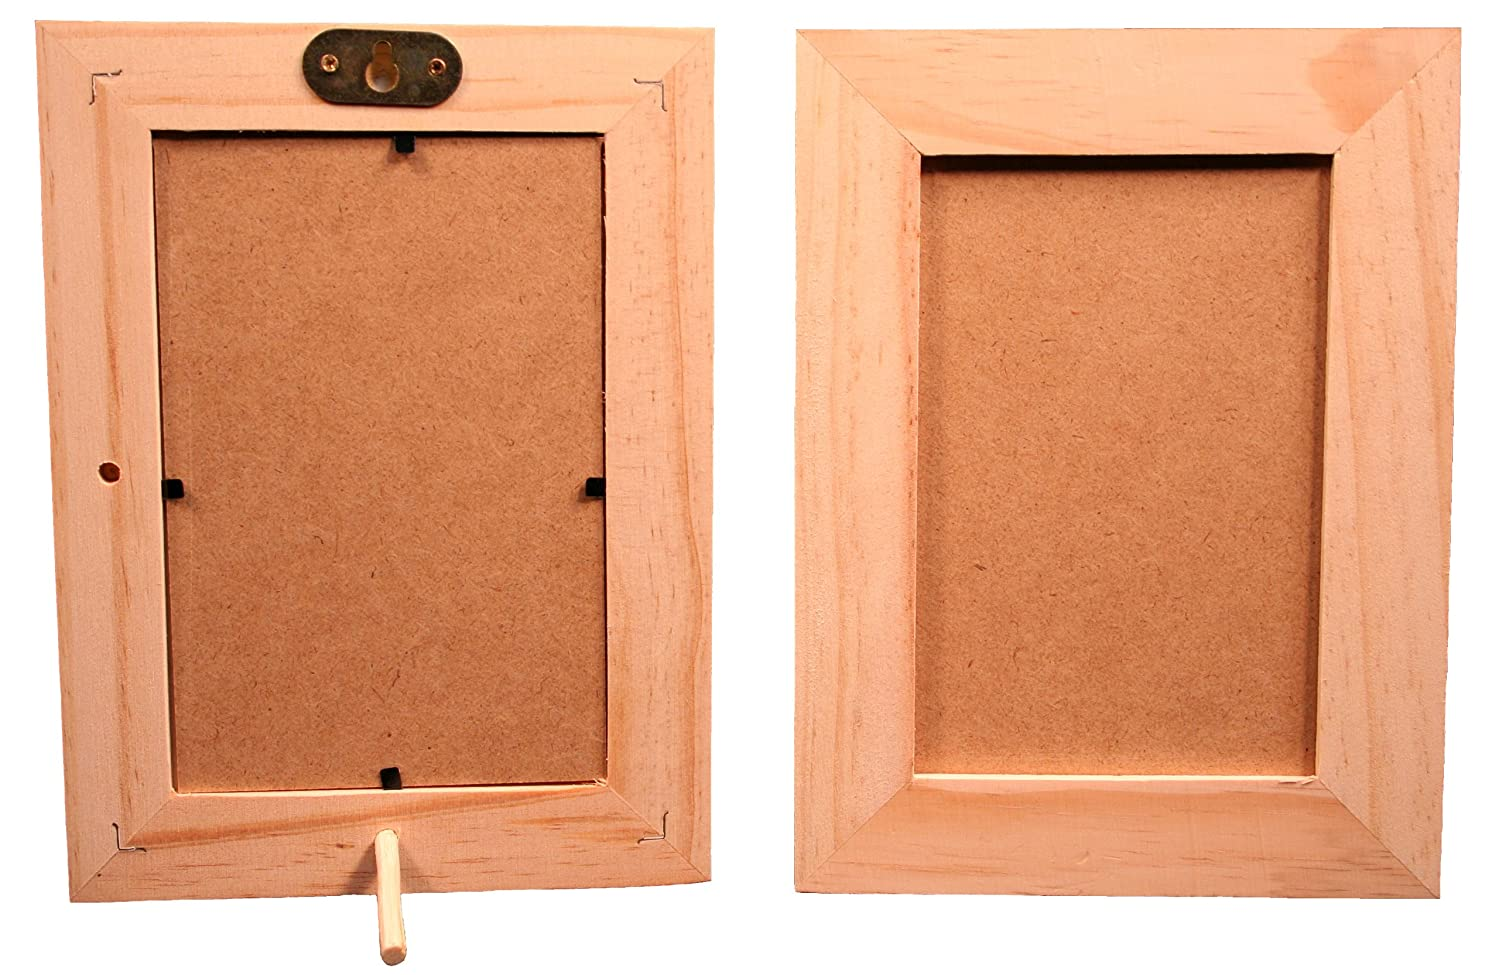 Pack of 6 - Unfinished Wood Picture Frames for Arts & Crafts - Stand or Hang on The Wall - Hold a 4x6 Inch Photo